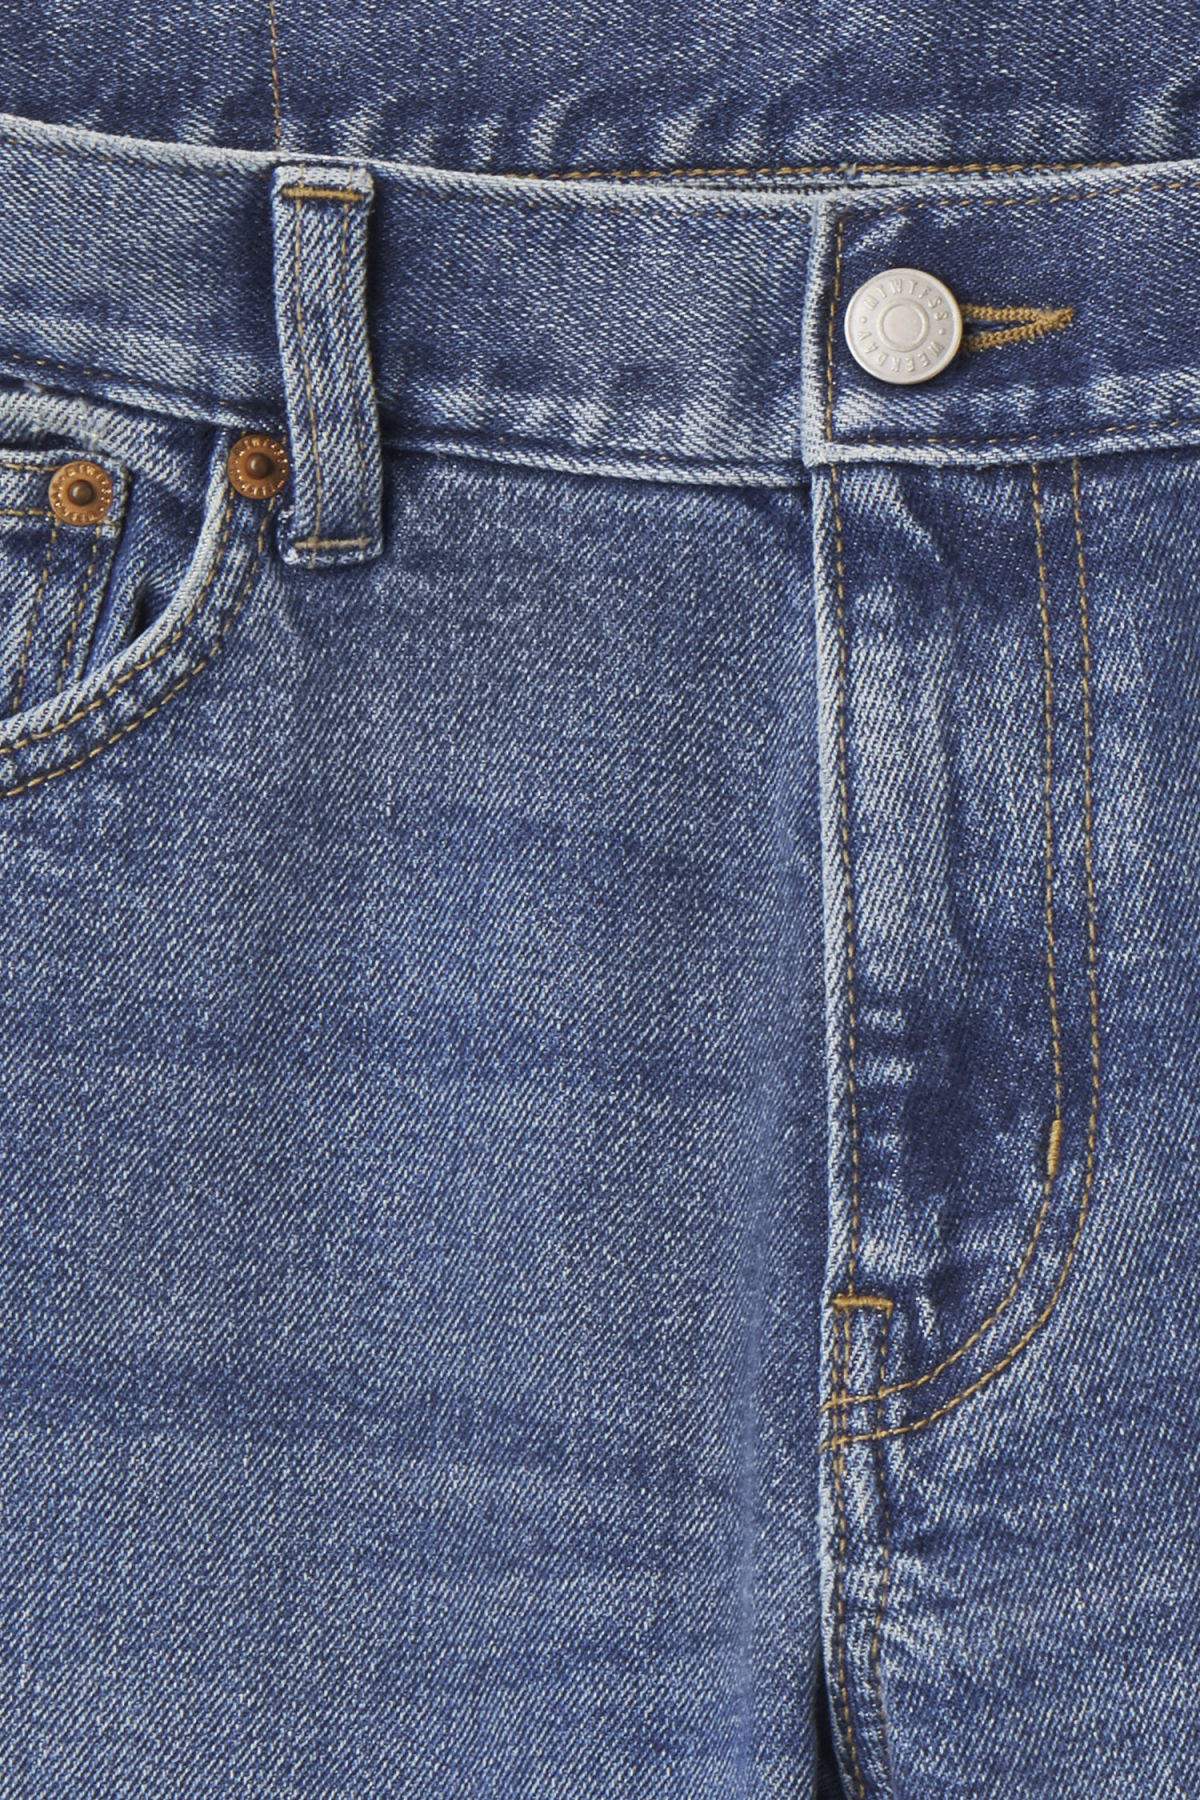 Detailed image of Weekday friday cricket blue jeans in blue